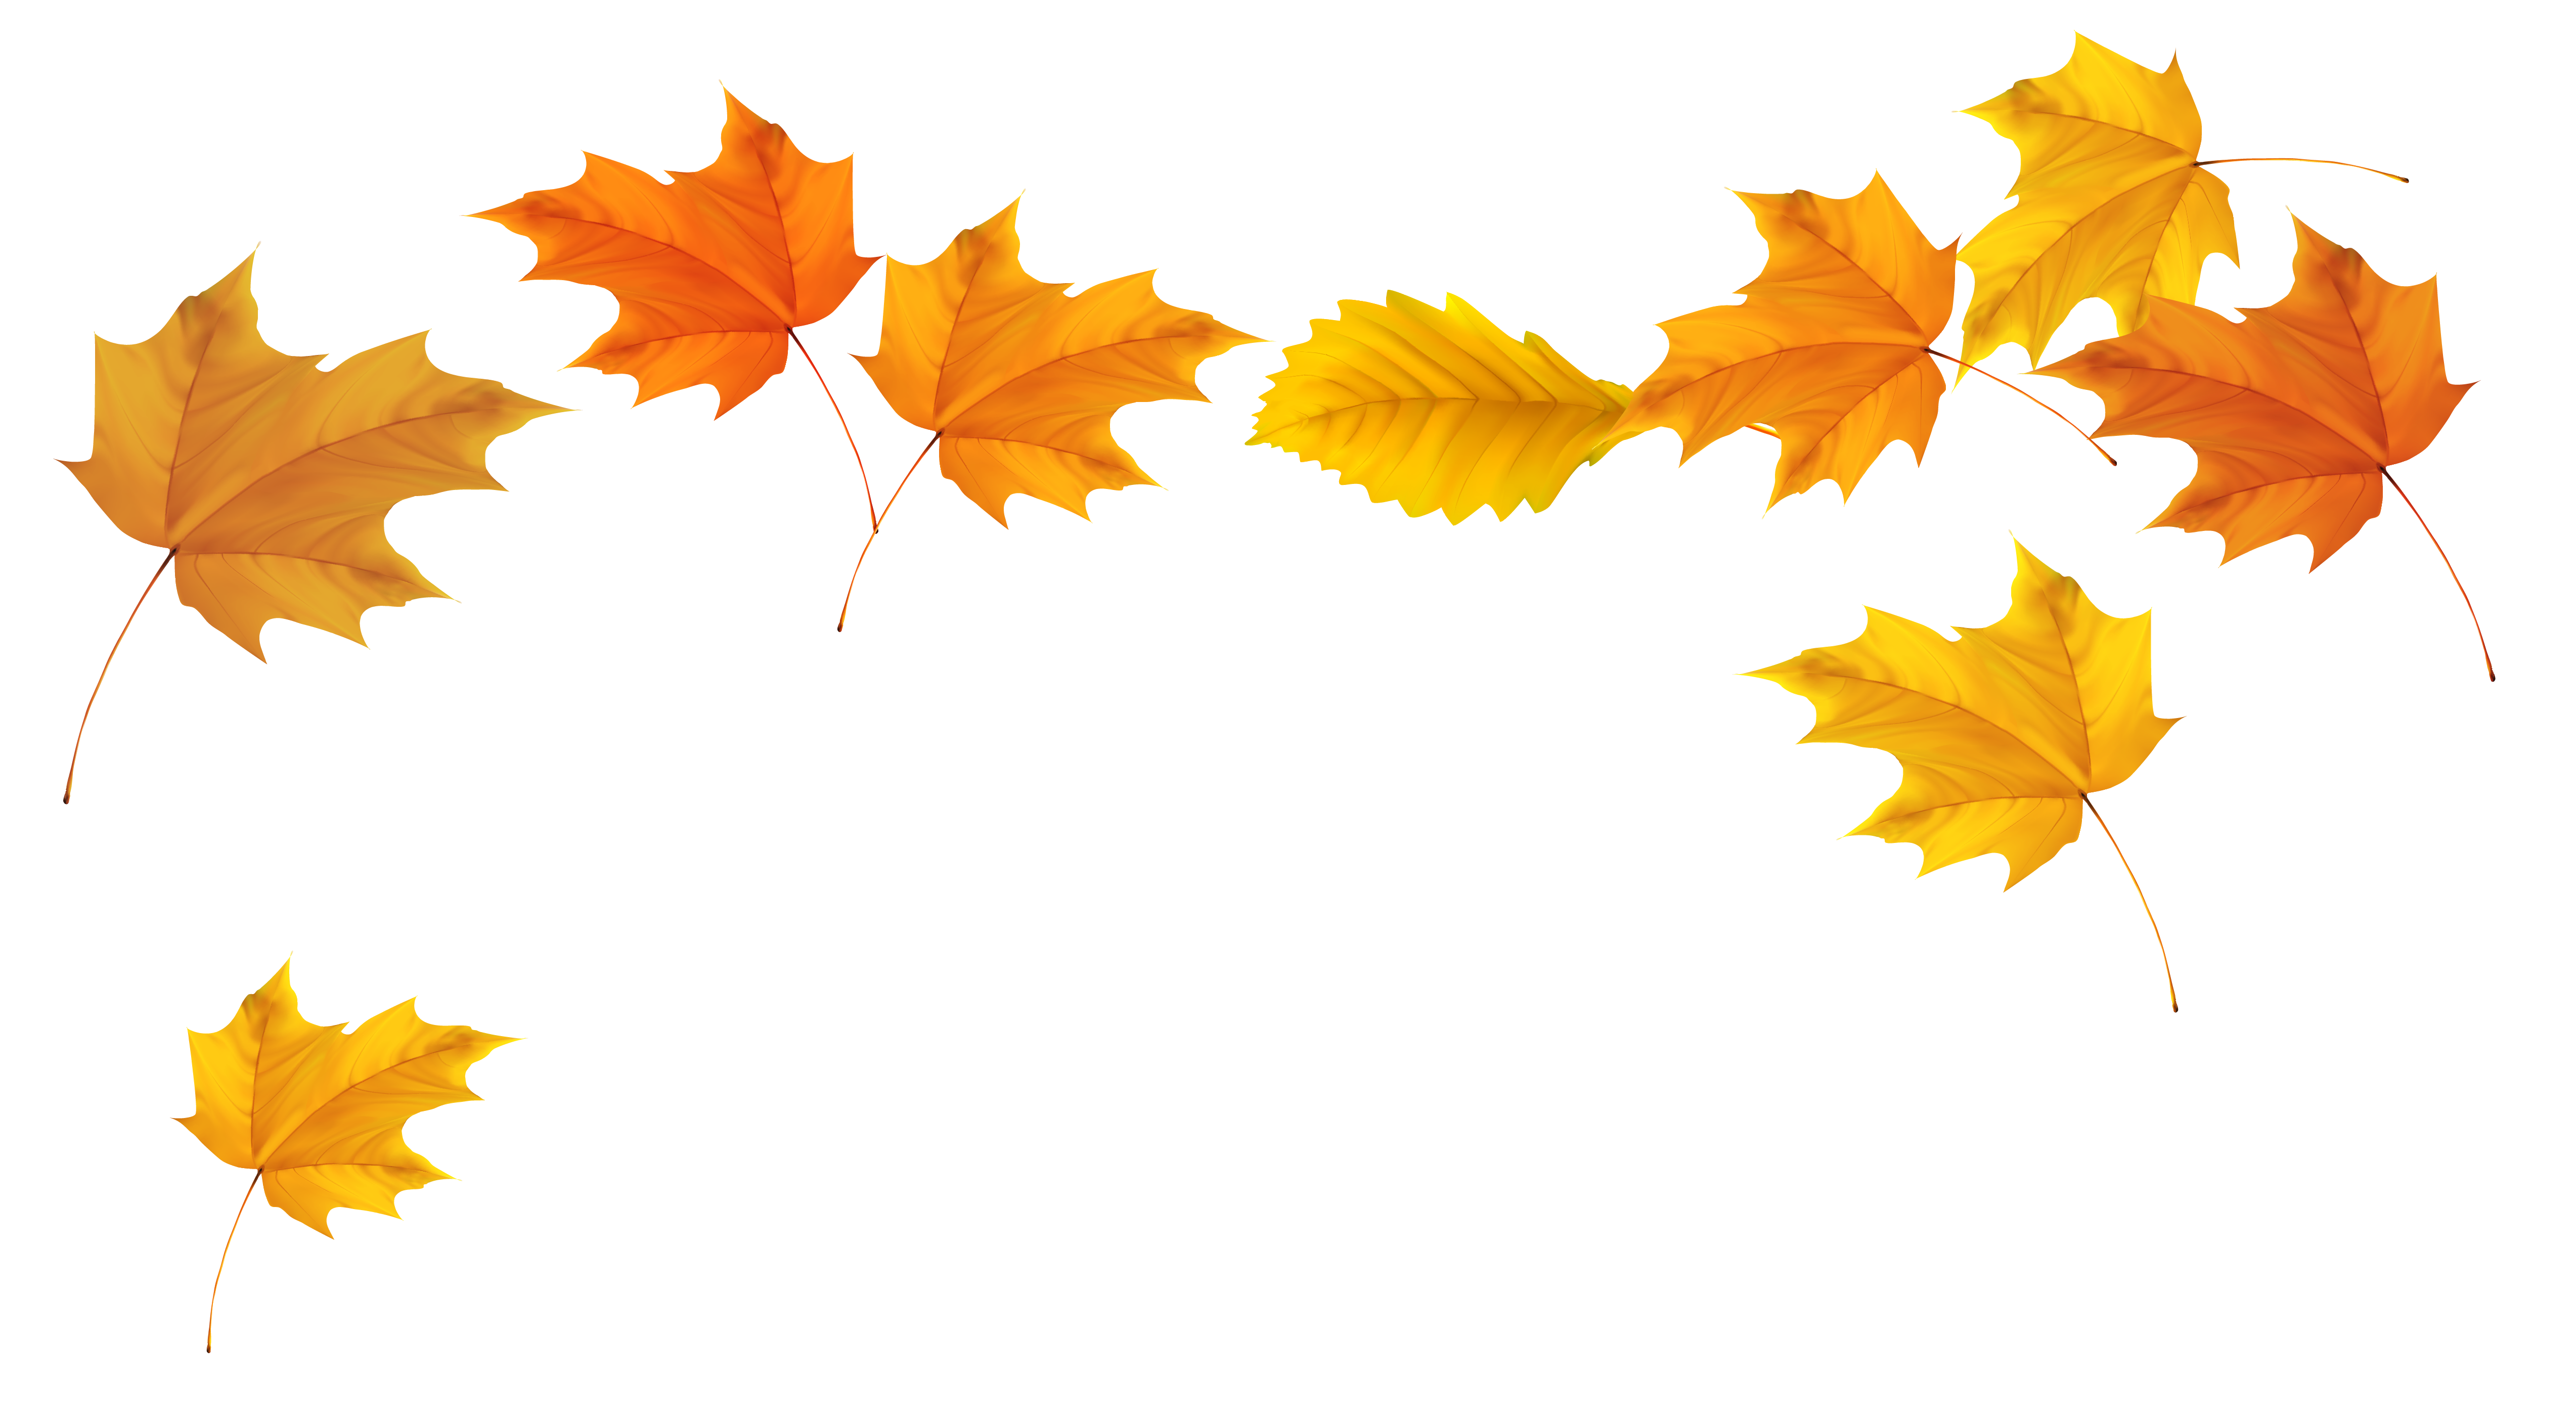 Blowing Leaves Fall Leaves Pictures Autumn Leaves Leaf Silhouette